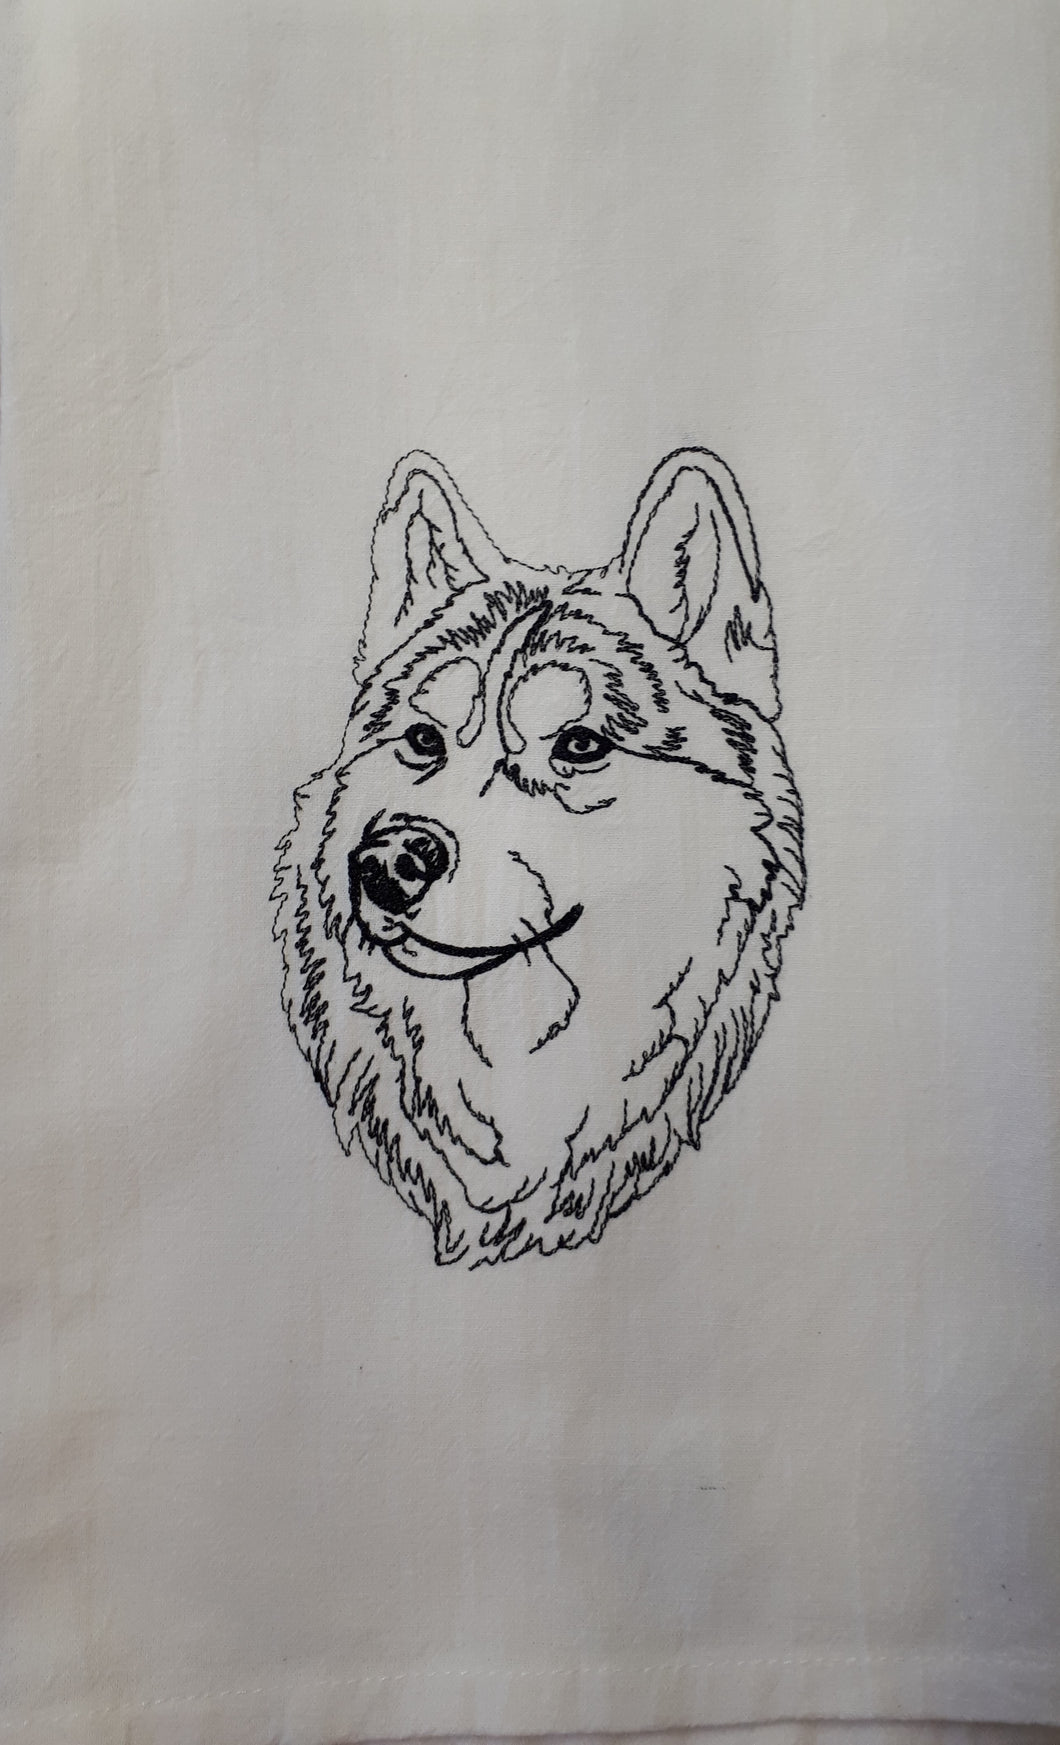 This white flour sack towel has a sketch of a husky stitched in black.